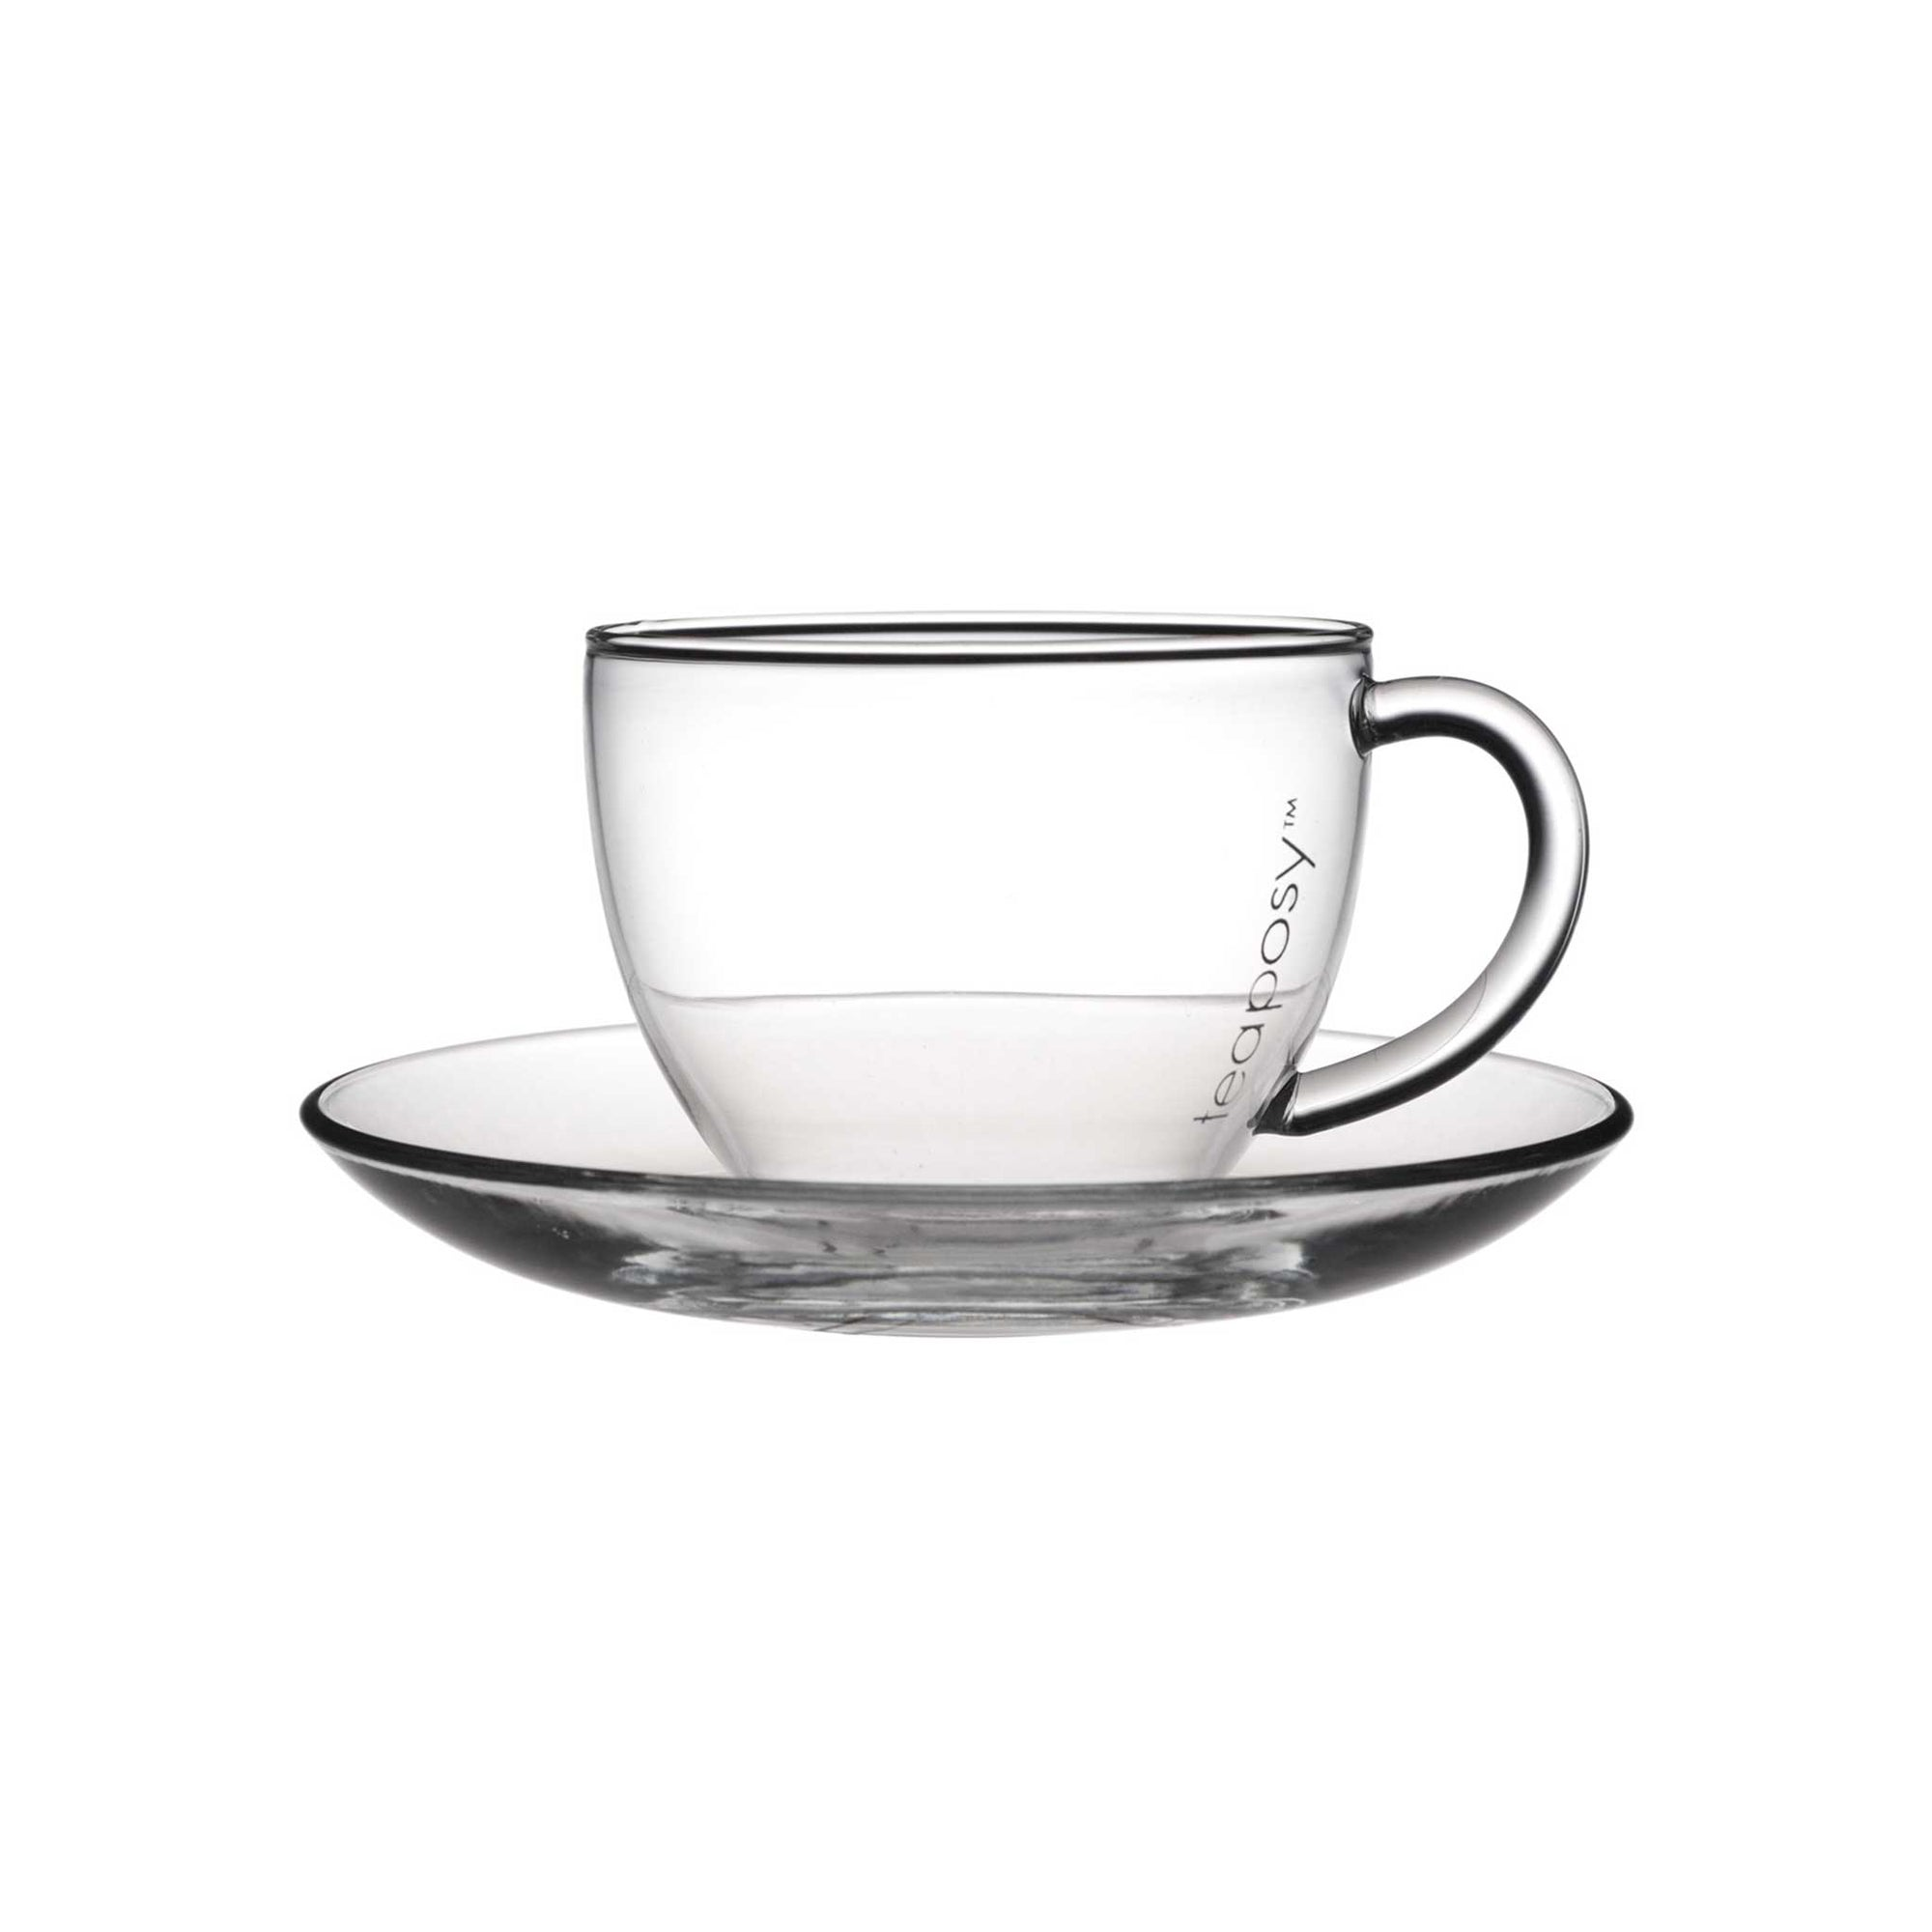 Teaposy tea for more glass tea cup and saucer set, 6 oz